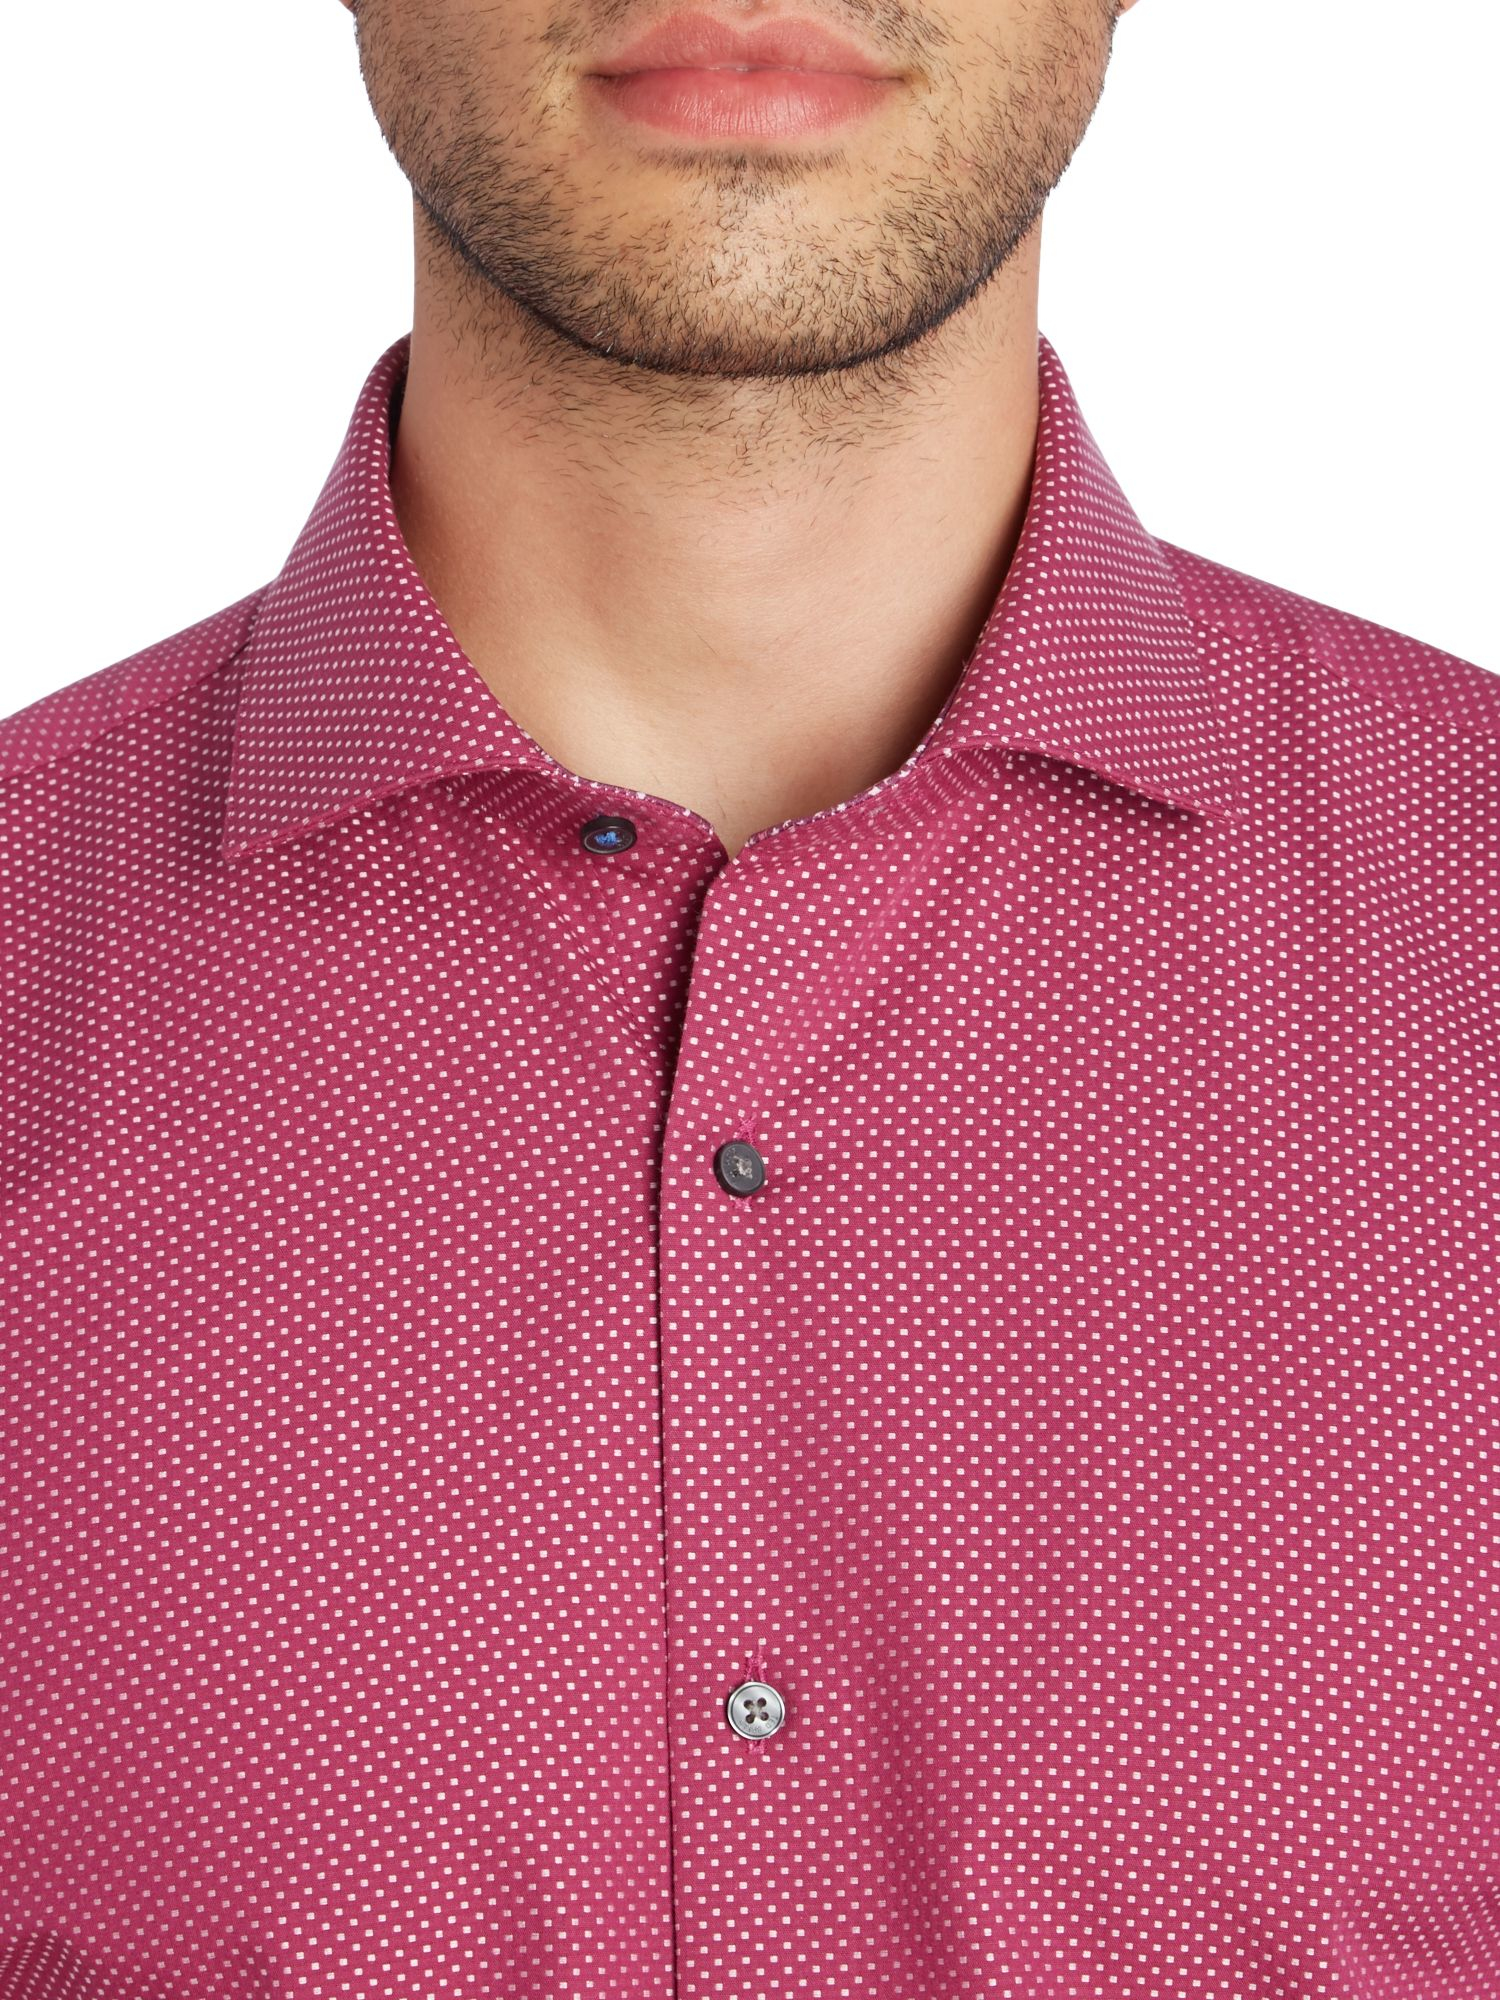 Ted Baker Cotton Tamson Square Geo Jacquard Shirt in Red for Men